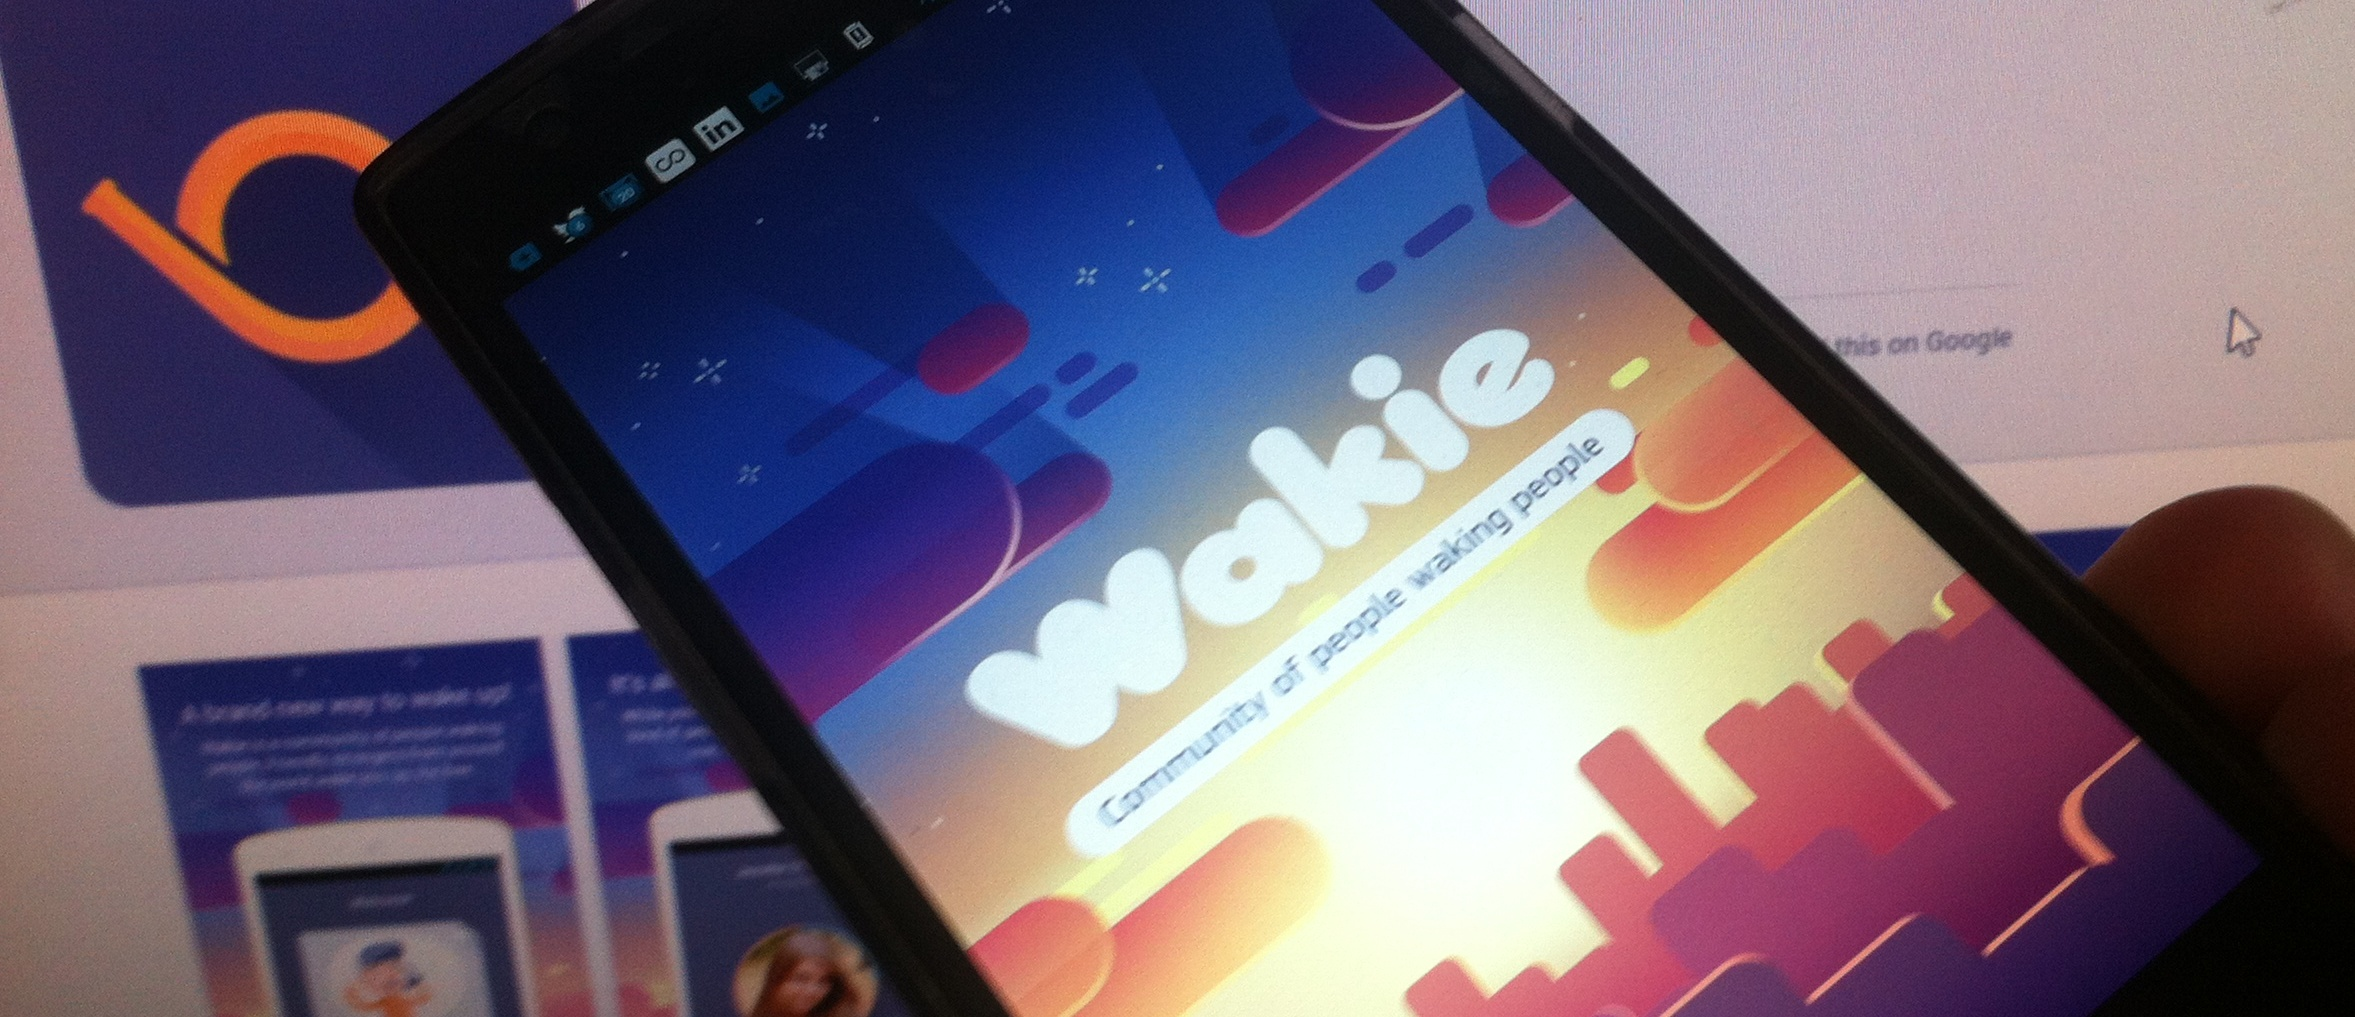 Wakie Wakes You With Phone Calls From Strangers